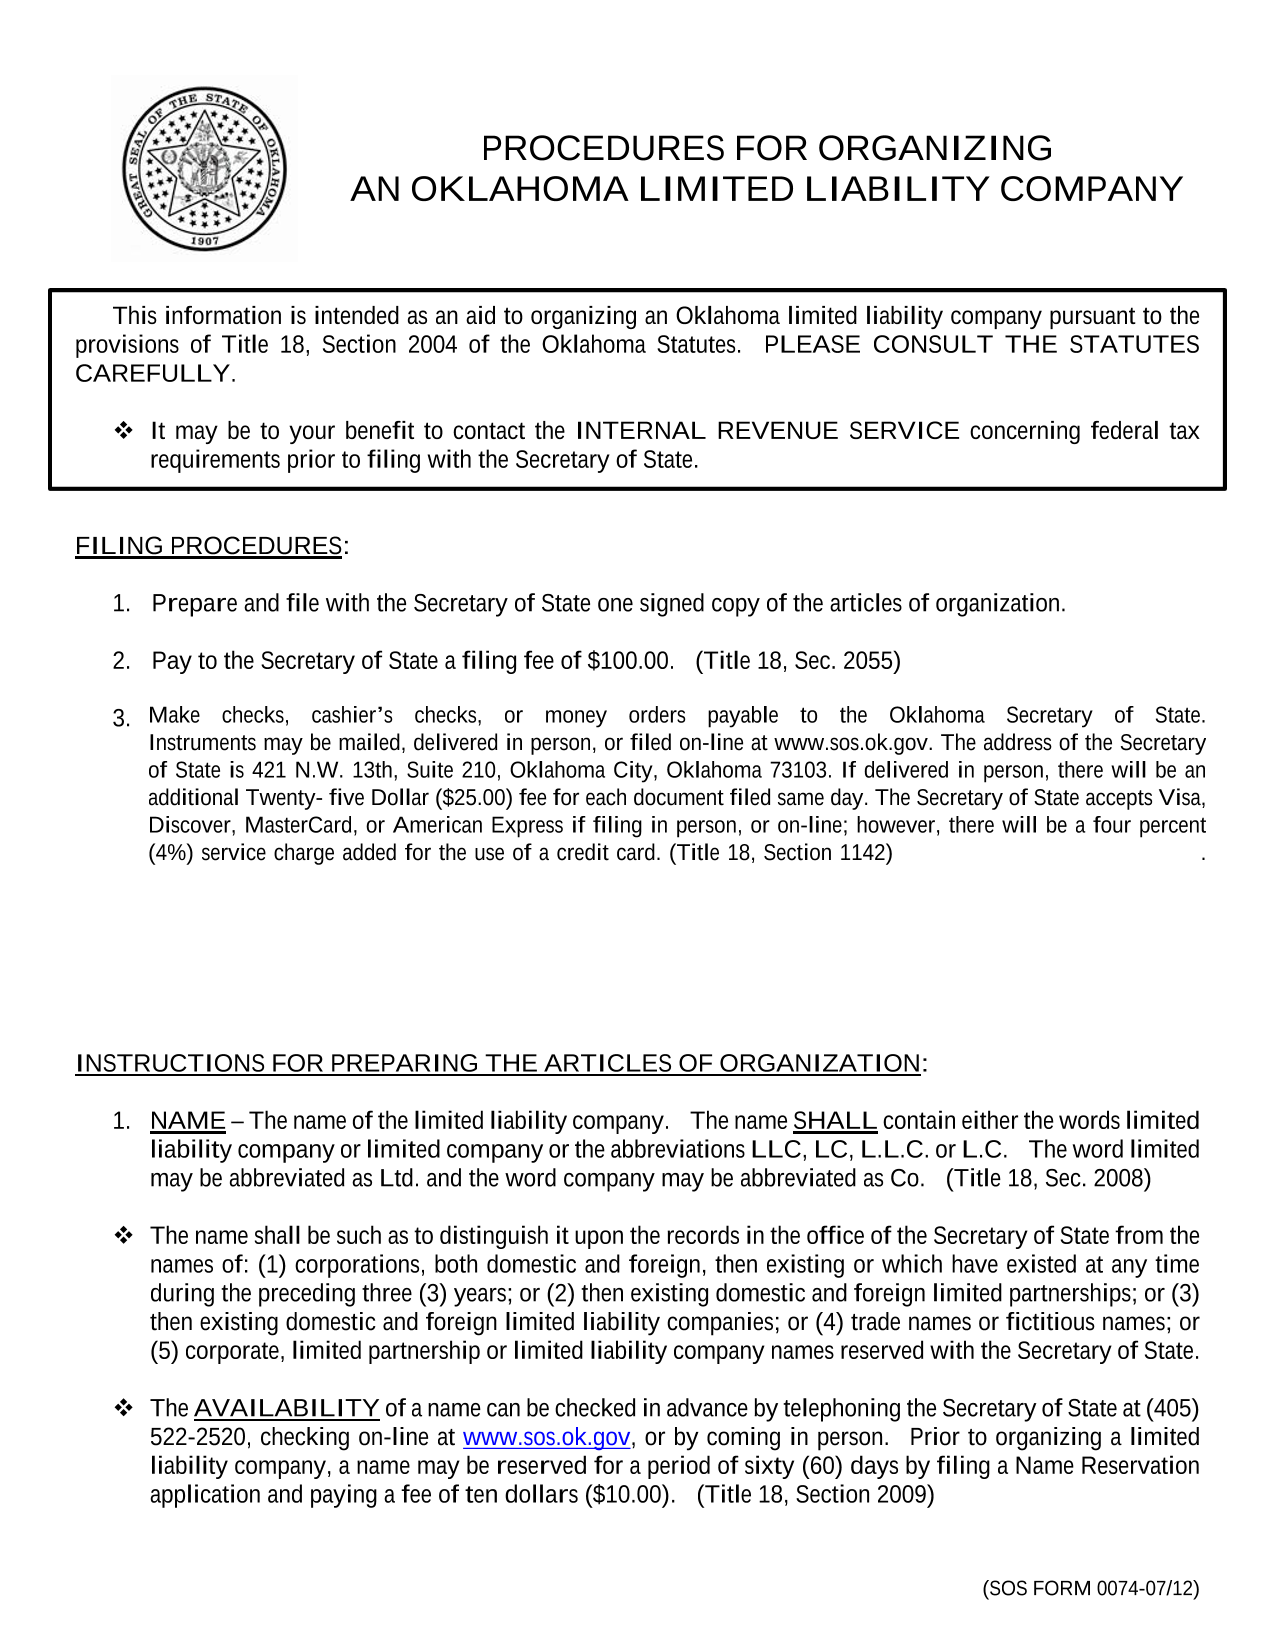 Oklahoma LLC Articles of Organization